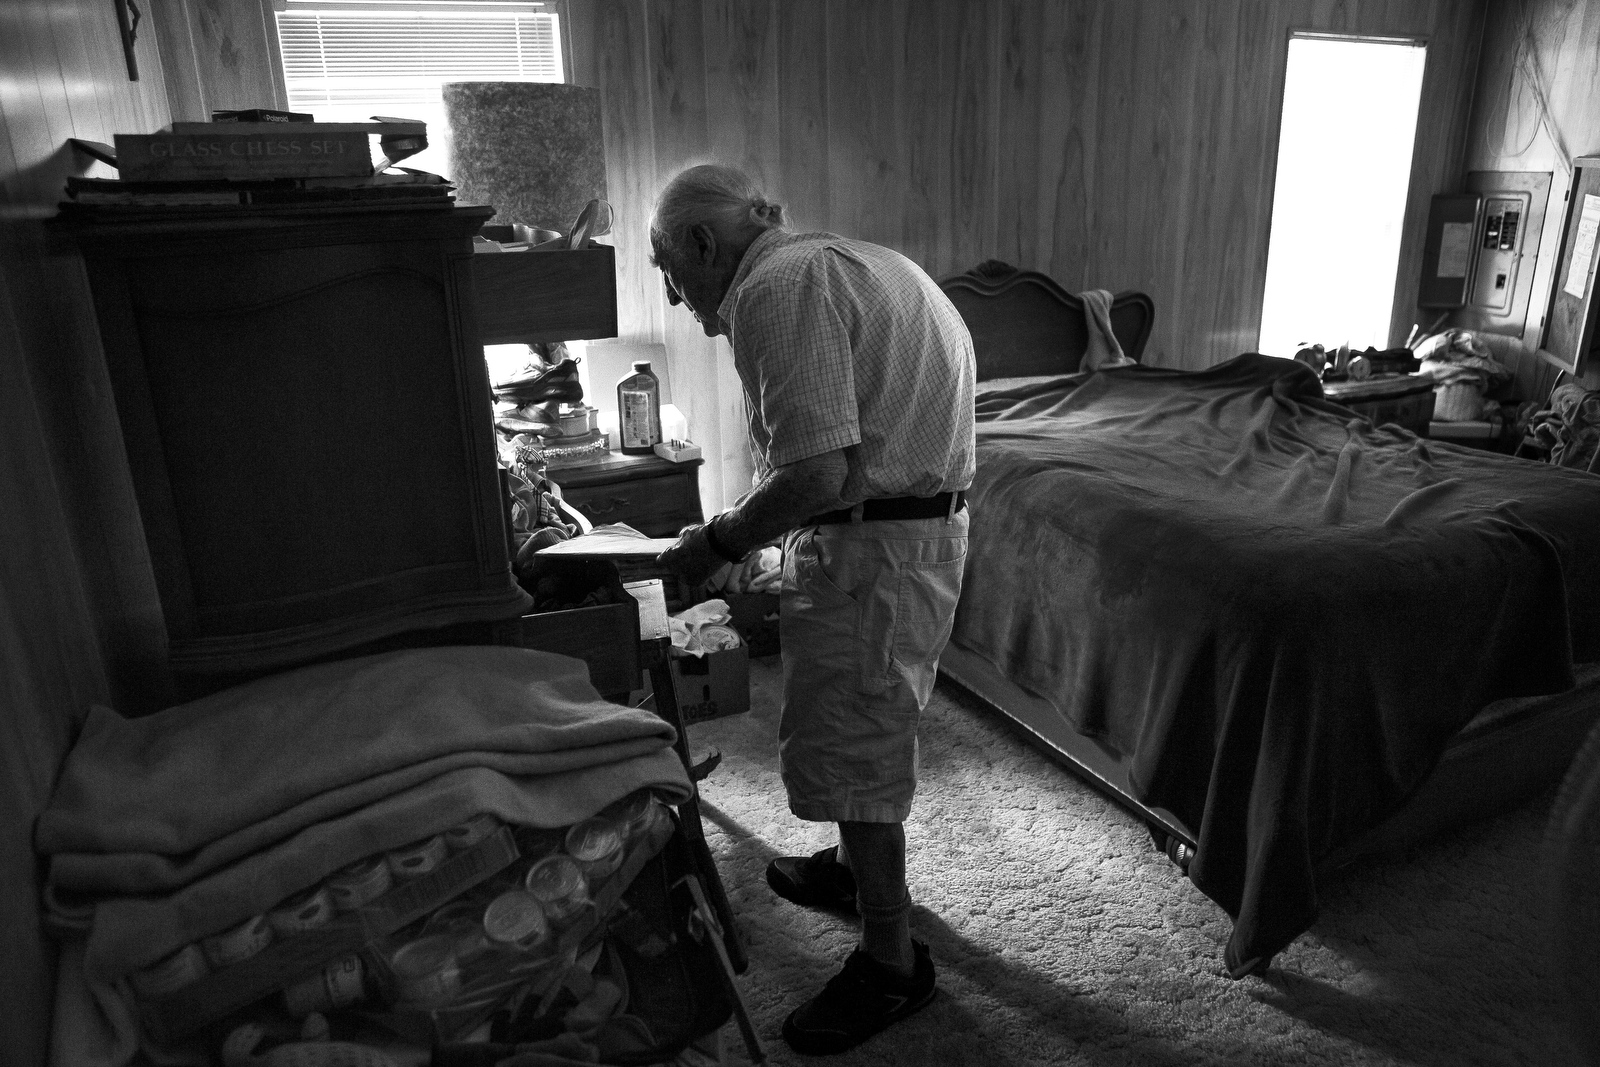 Charles Asaro, 98, stands in the bedroom of his home. He has lost much of his eyesight and although he fell into a hole in the floor of his bathroom, he would prefer to continue to live independently.